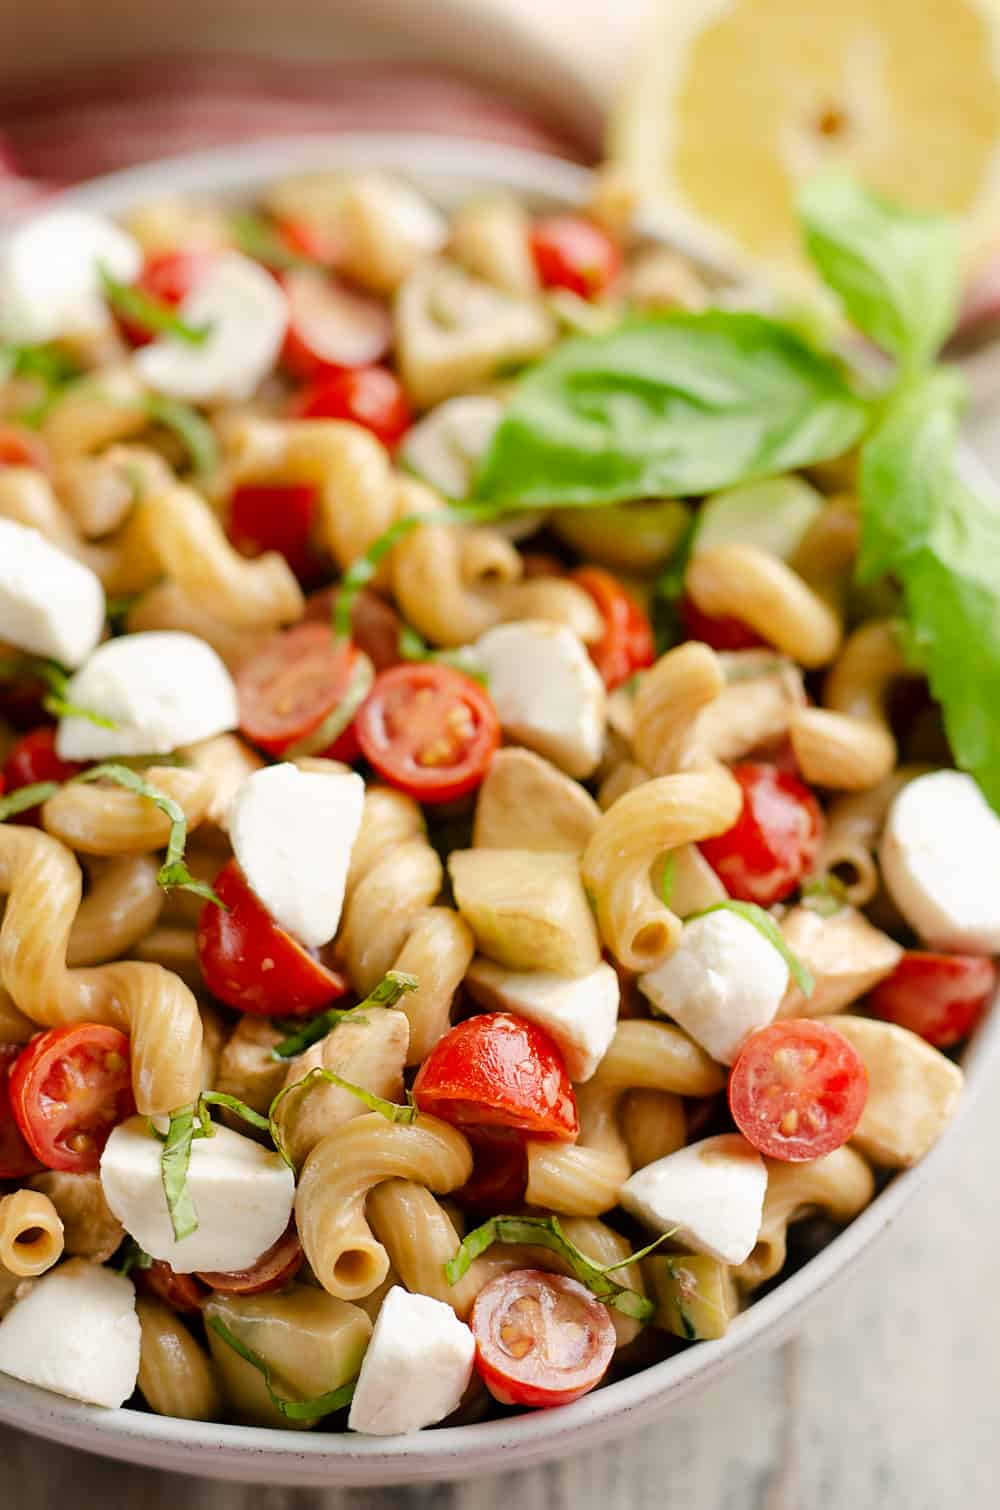 Balsamic Caprese Pasta Salad in serving bowl